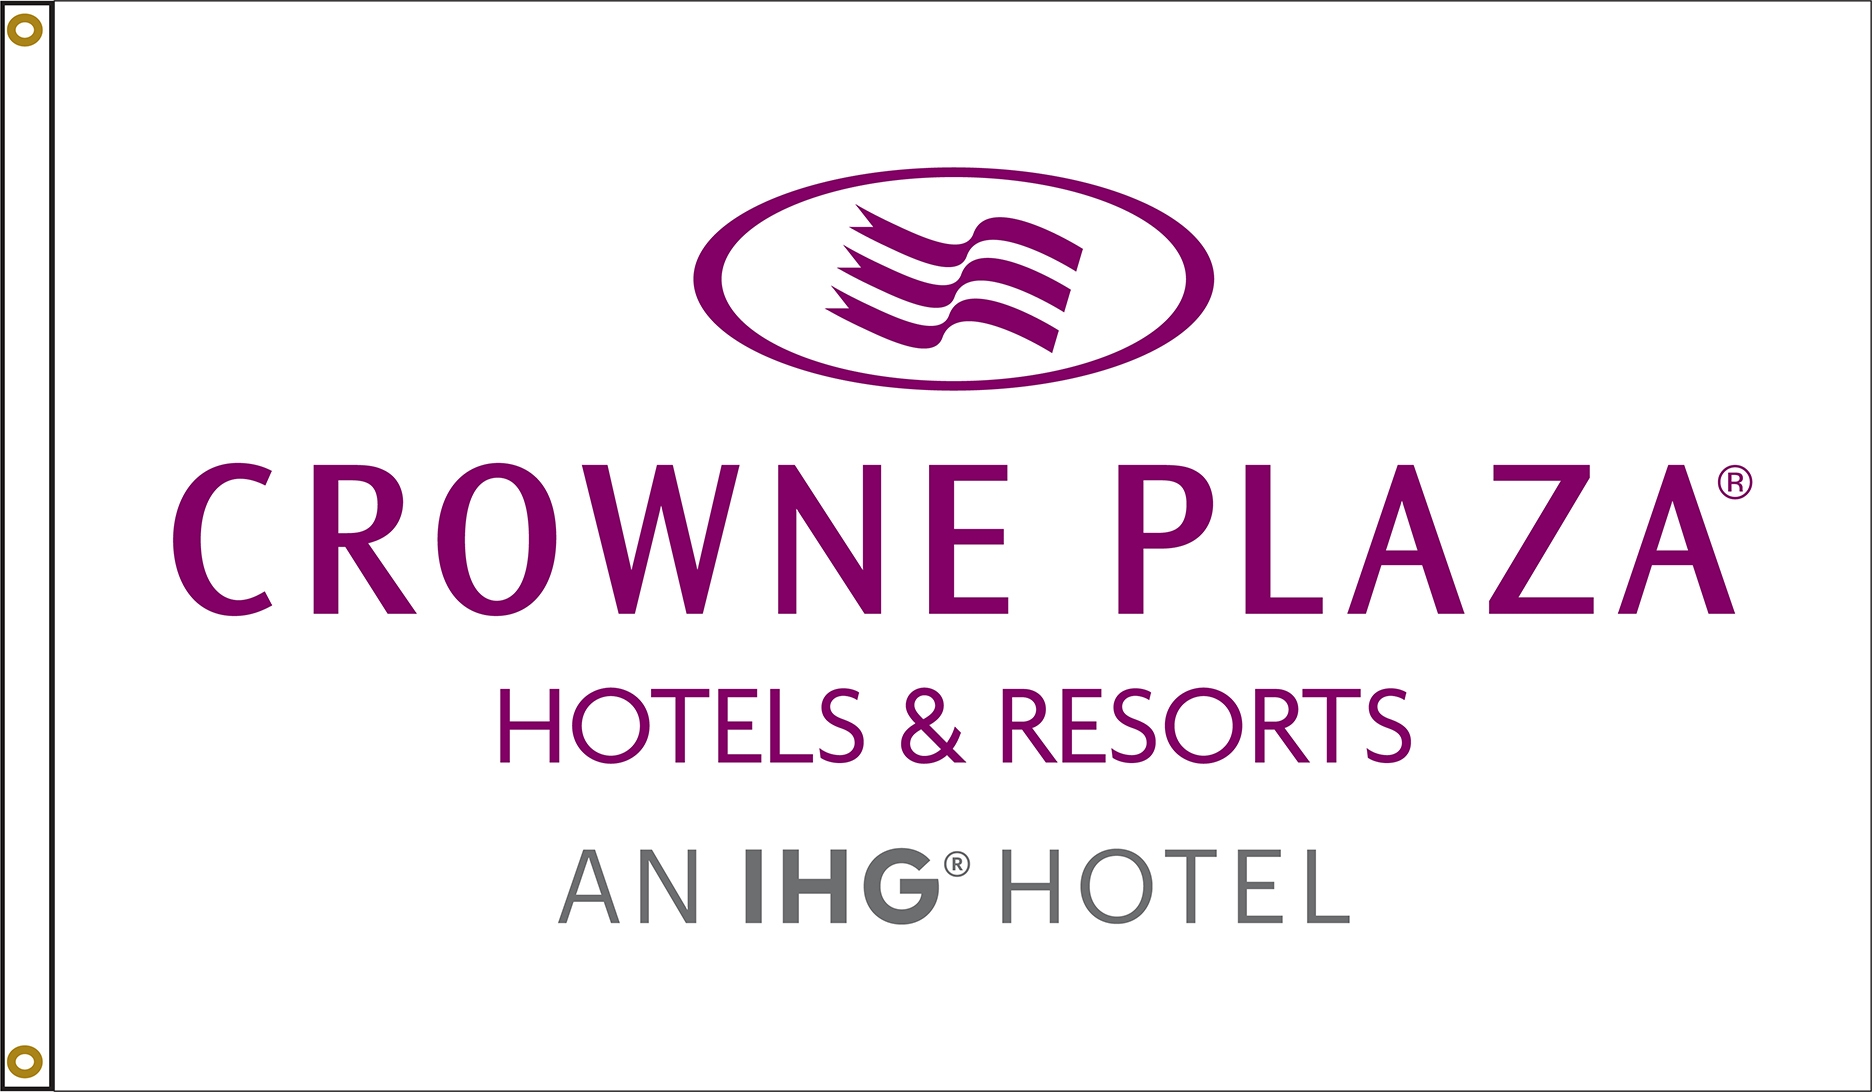 Crowne Plaza Flags